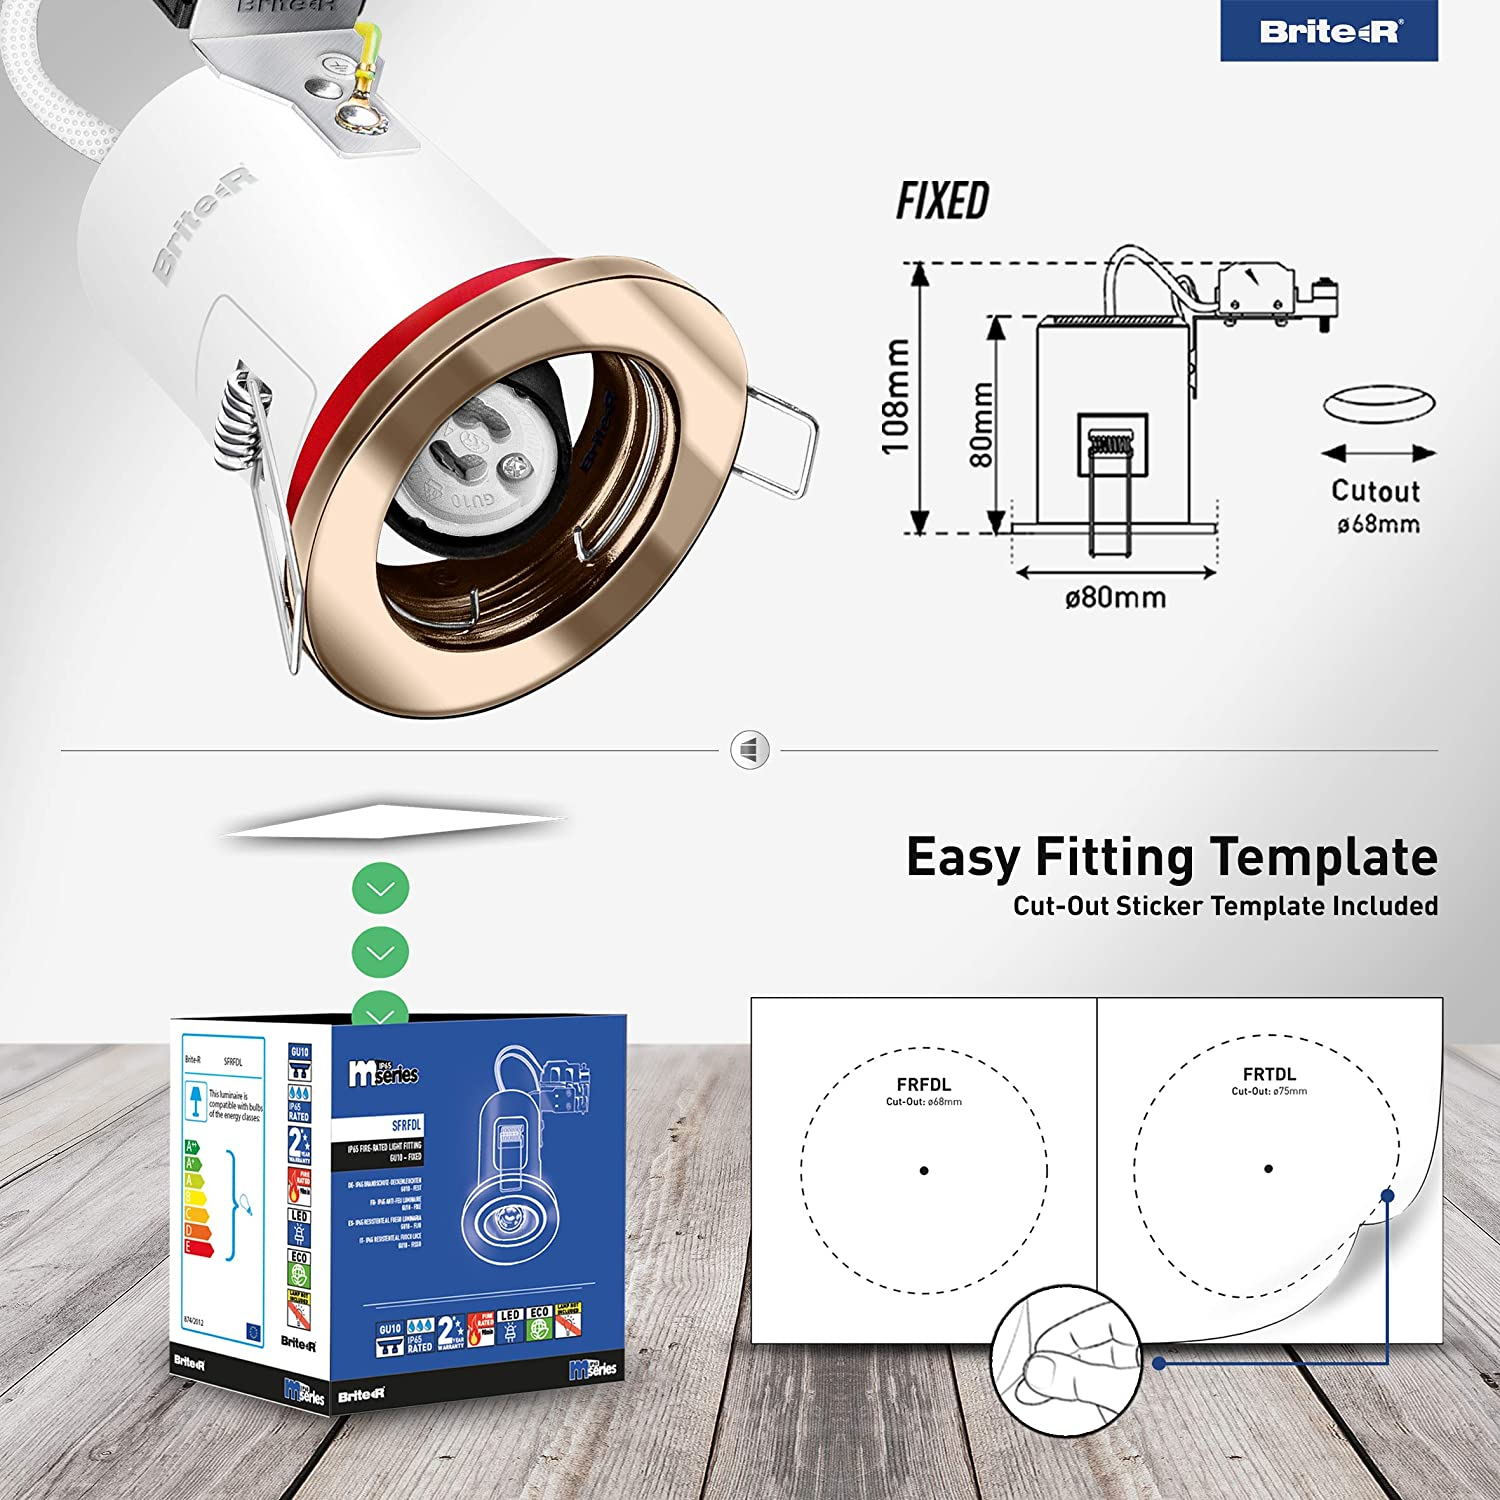 10x GU10 Fire Rated Fixed Downlight Antique Brass Brite-R LED Spotlight Recessed Ceiling Light Fitting Pressed Steel IP20 Rated Halogen Compatible CE Approved Easy Install 2 Year Warranty No Bulb